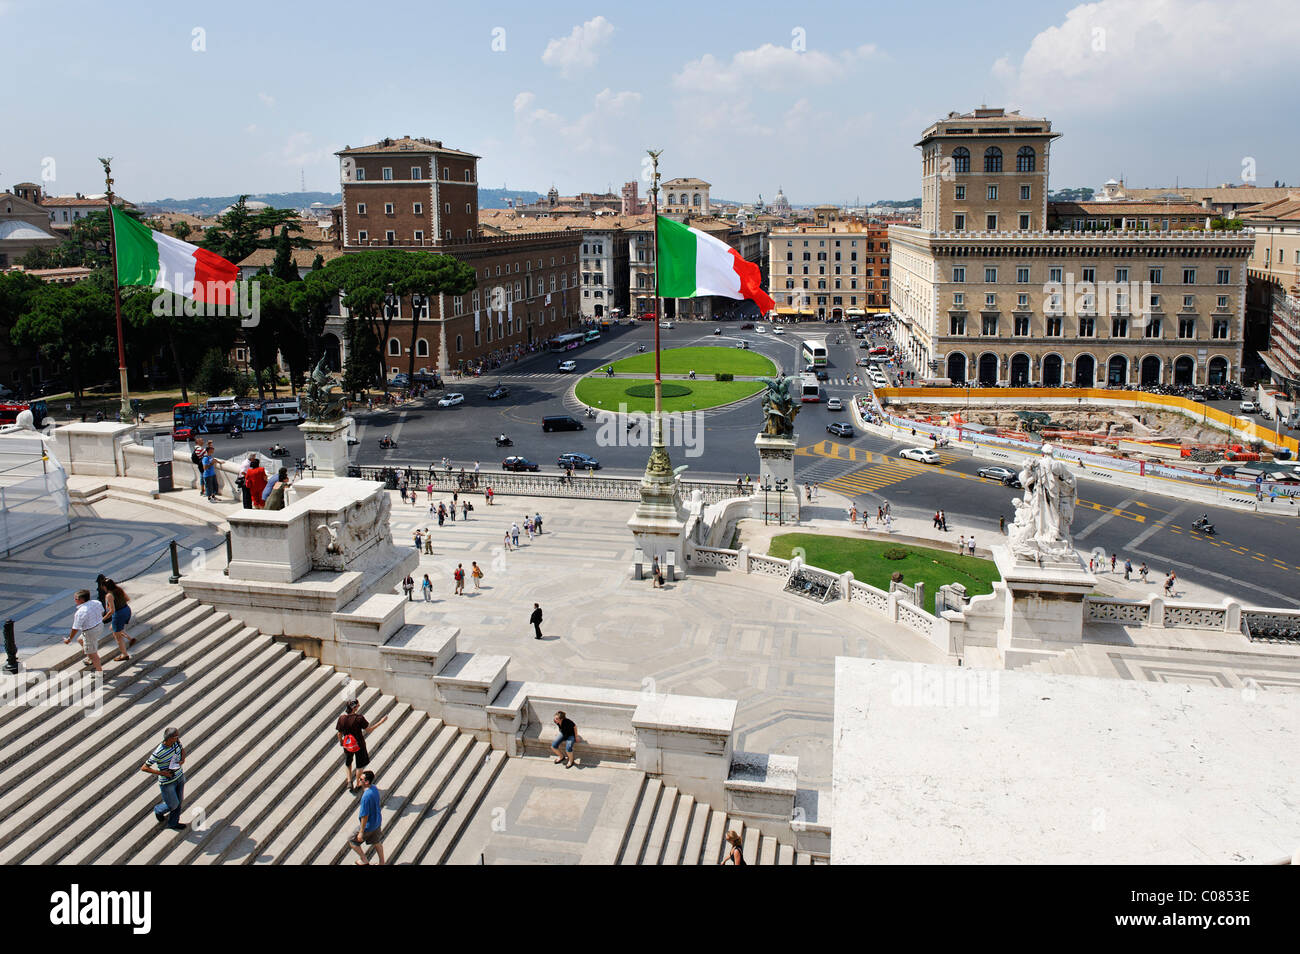 View from the monument of Vittorio Emanuele to Piazza Venezia, Il Vittoriano, Rome, Italy, Europe - Stock Image